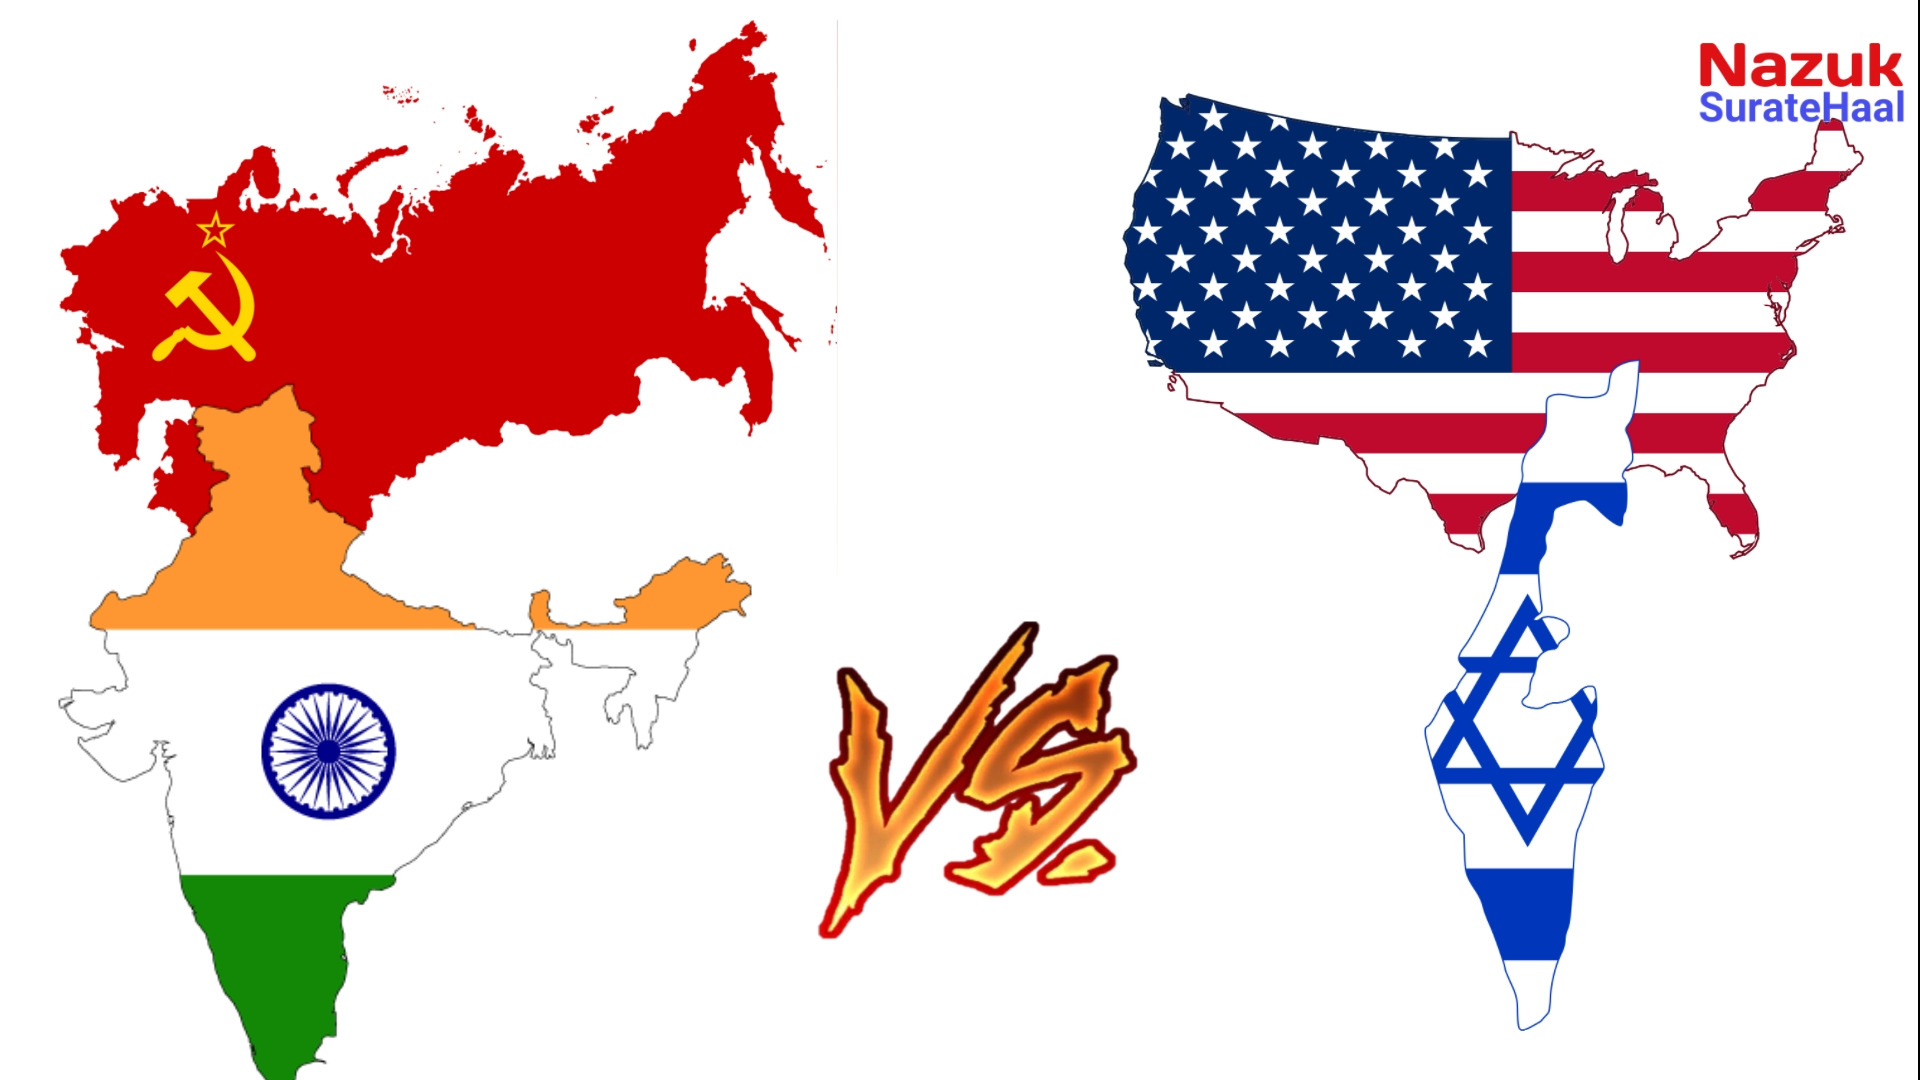 during cold war, Israel enjoyed the strong support of the West while India had political leanings towards the Soviet Union,